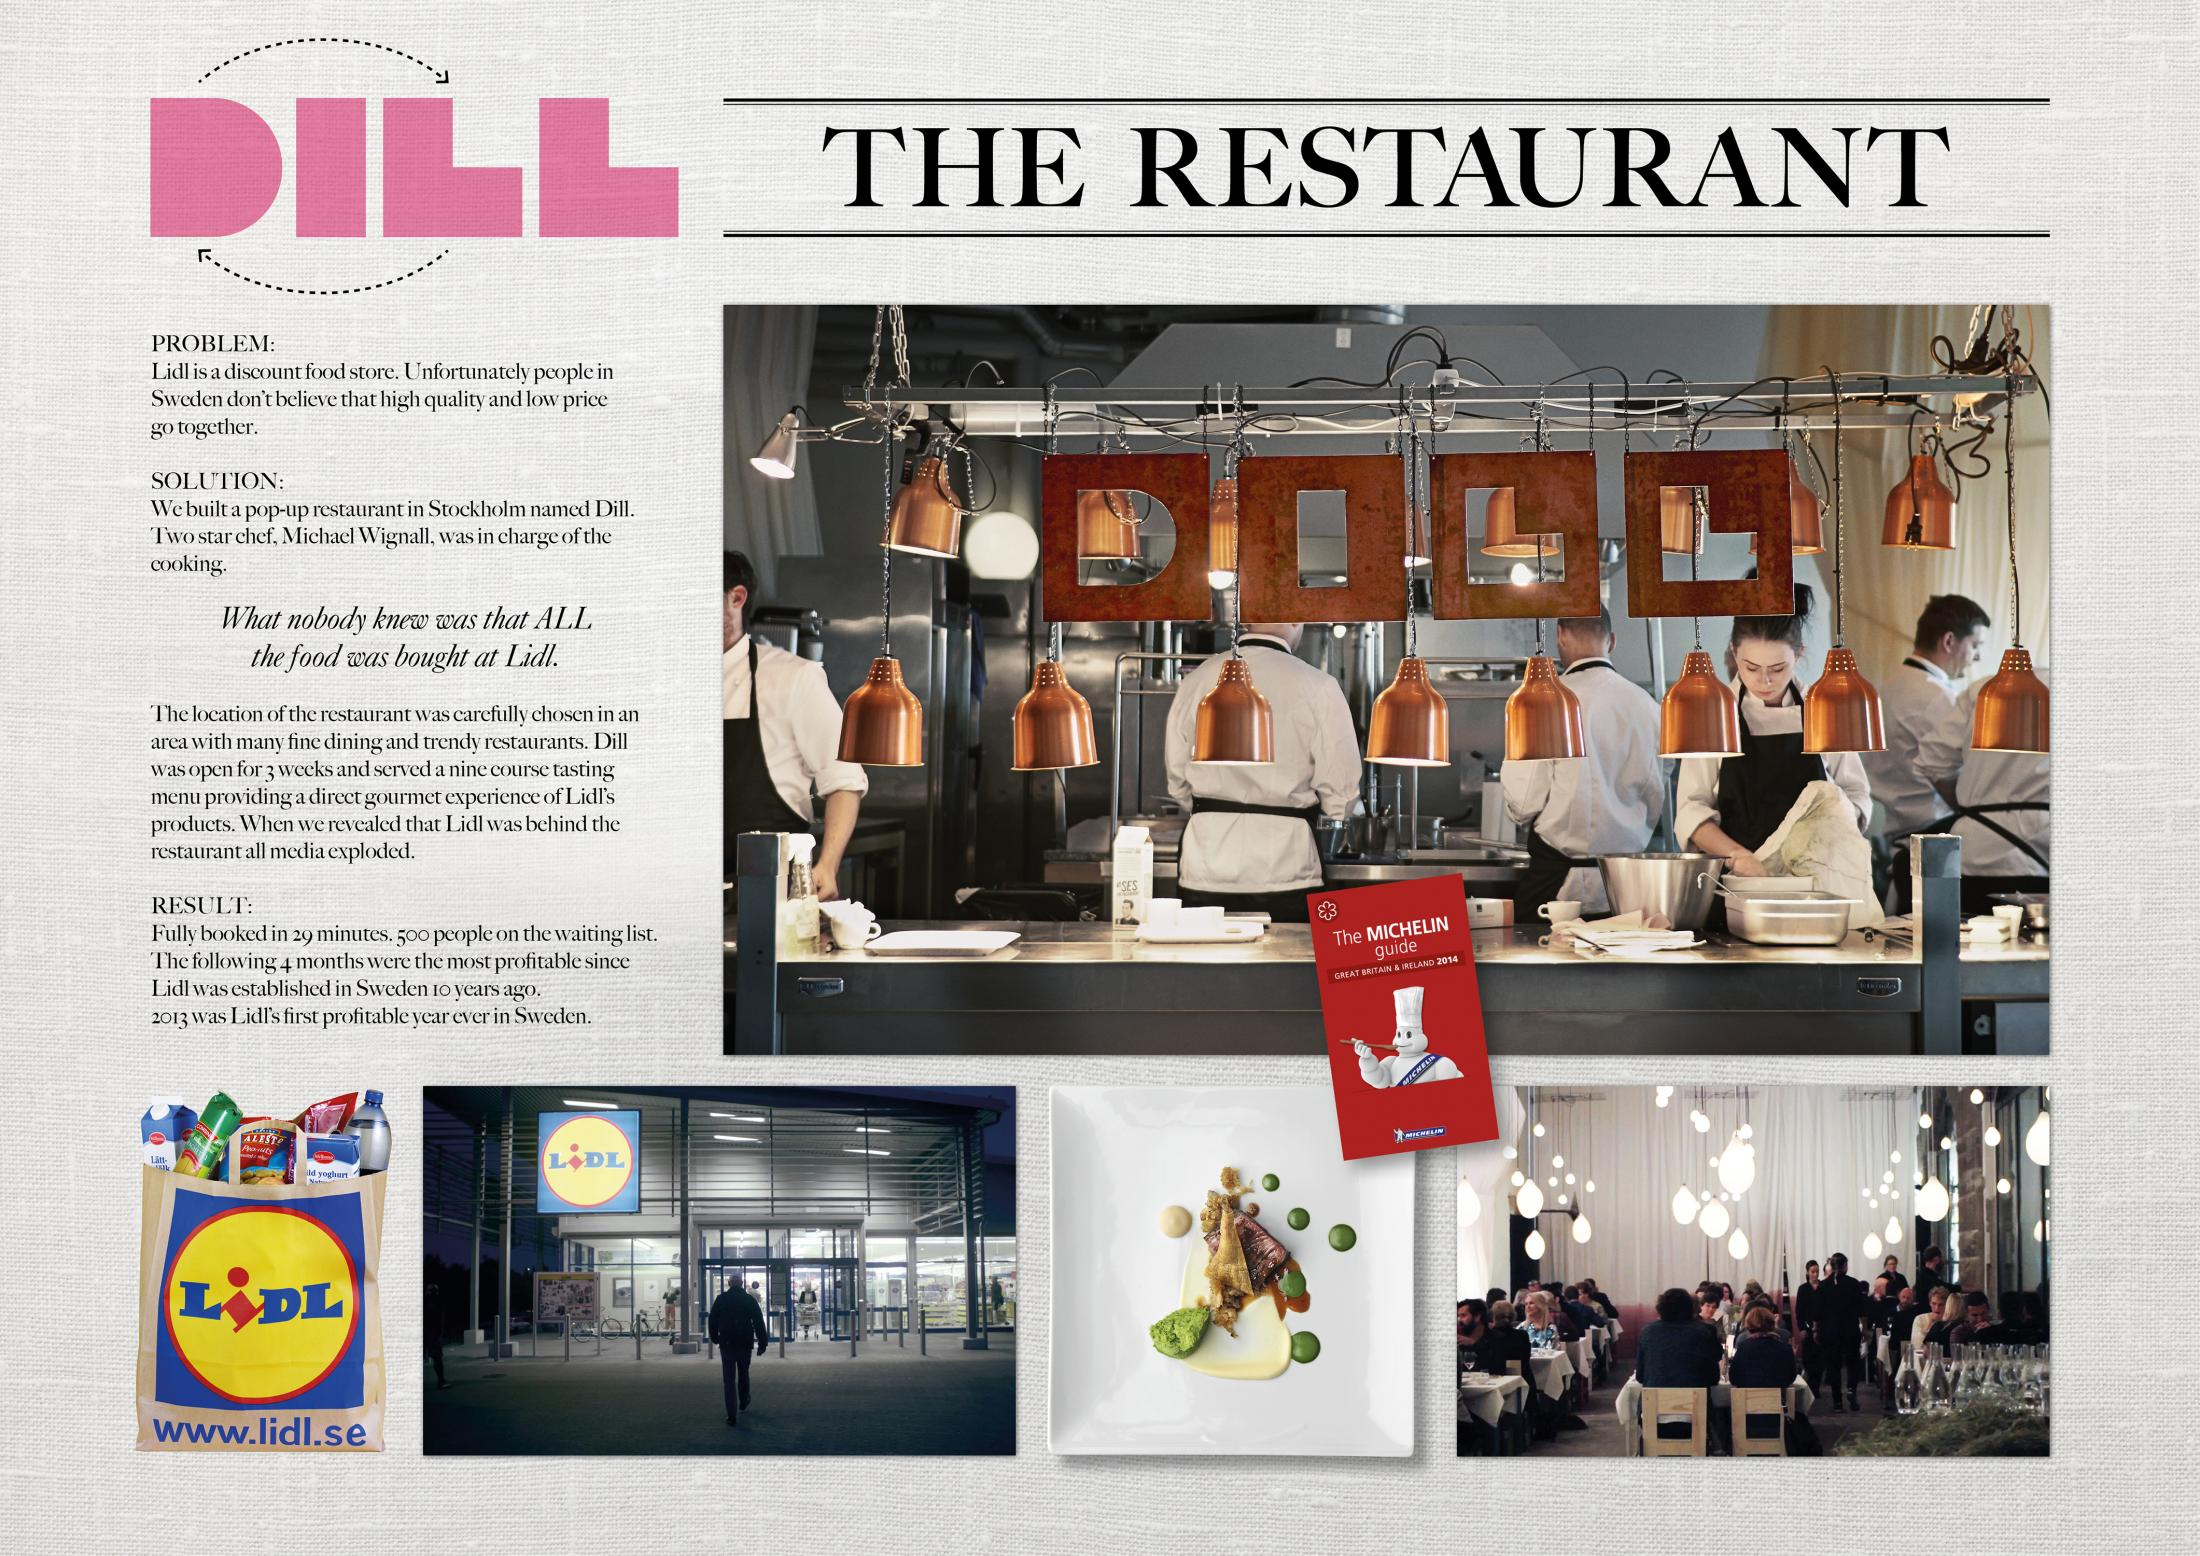 Thumbnail for Dill - The restaurant.